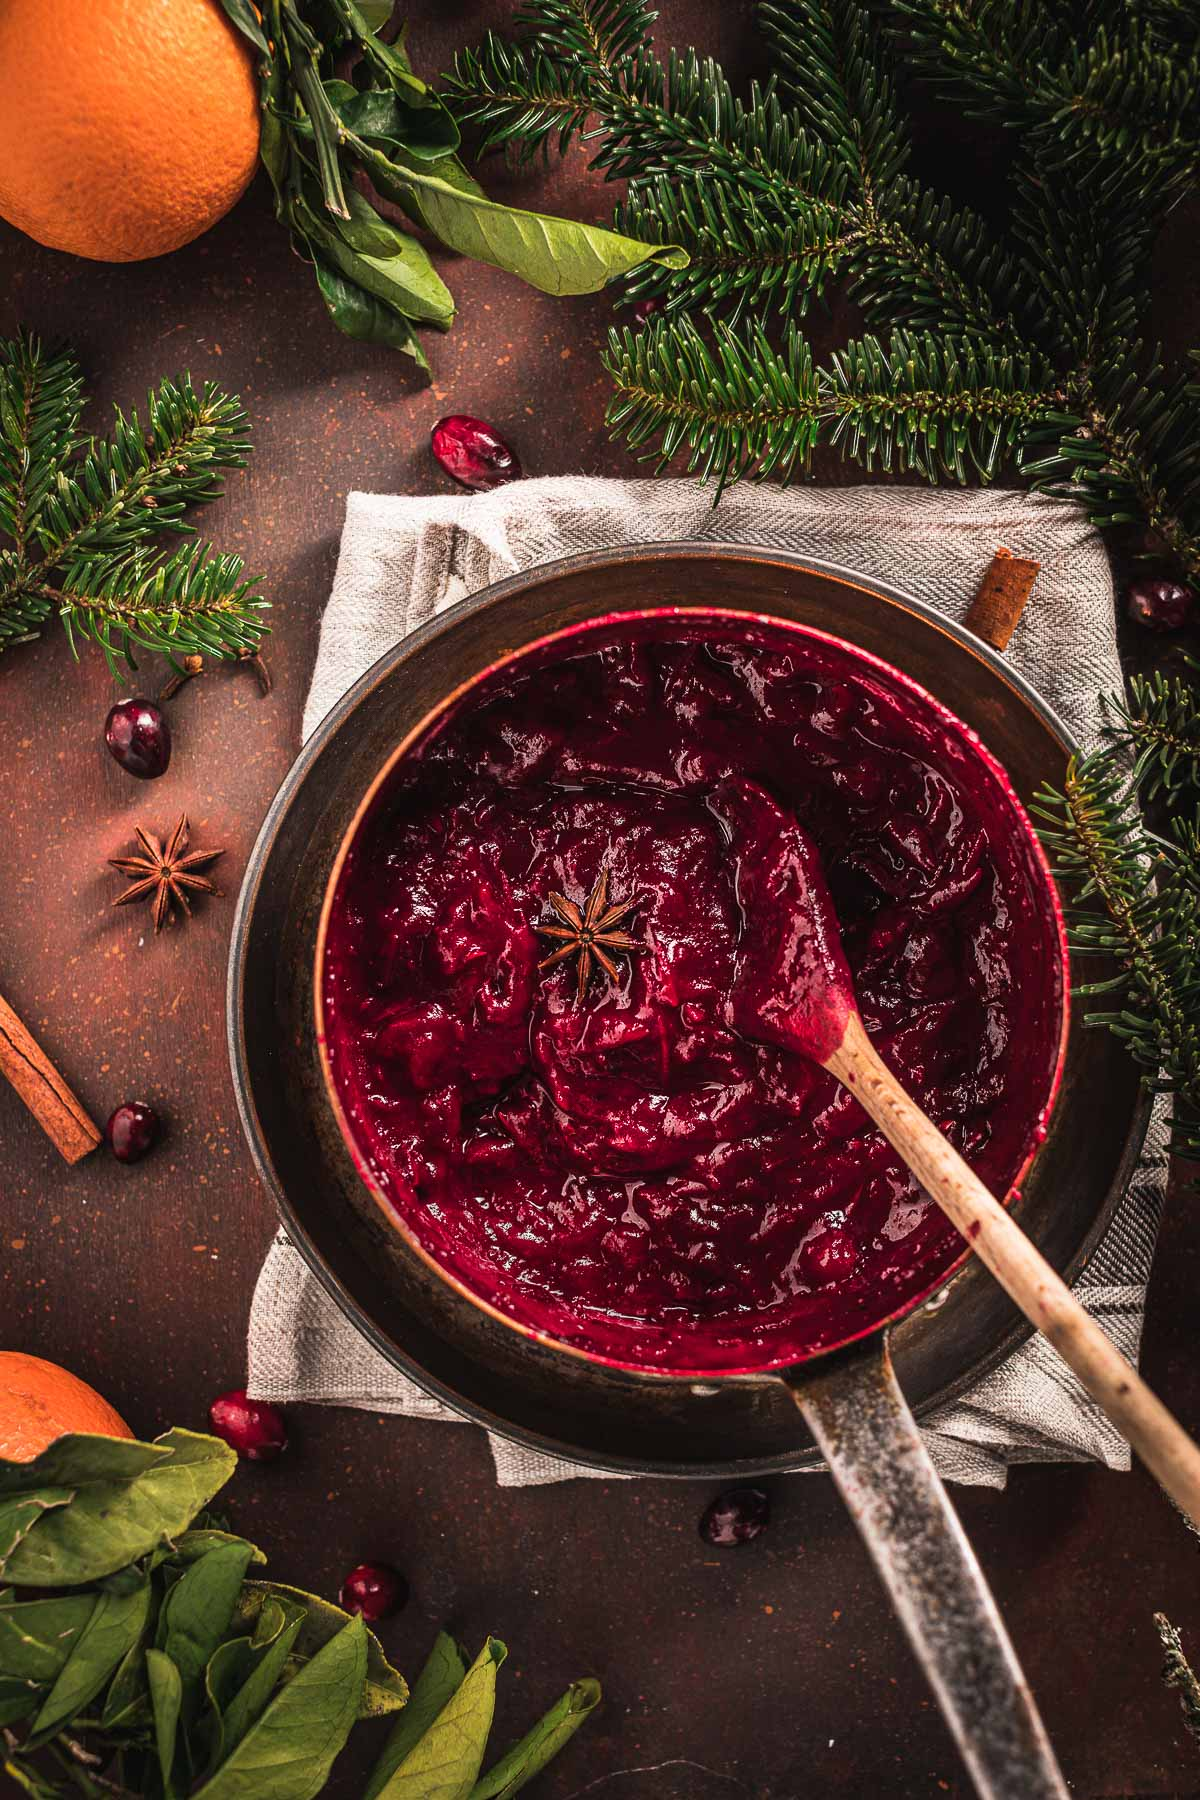 Ricetta salsa di mirtilli rossi senza zucchero vegan Natale Easy Maple Cranberry Sauce recipe naturally sweetened with maple syrup Thanksgiving